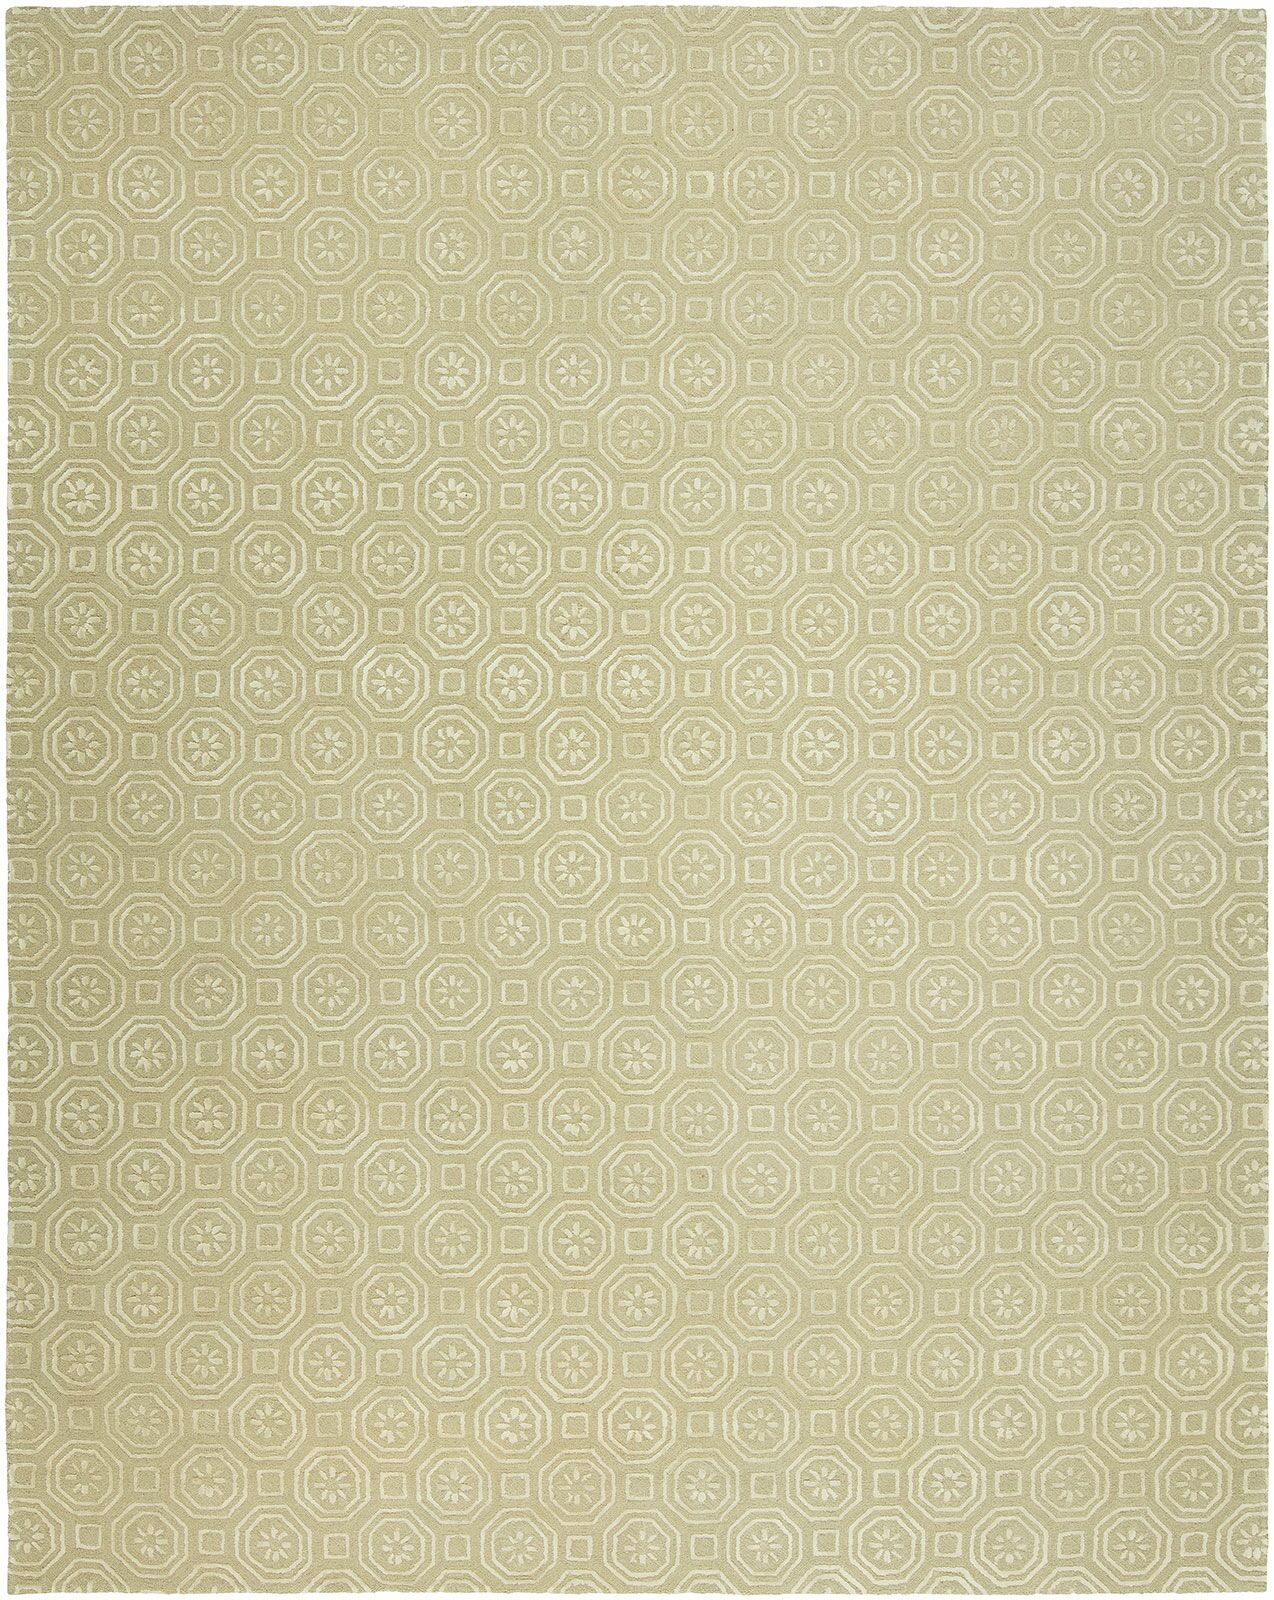 Rivka Hand-Tufted Wool Beige Area Rug Rug Size: Rectangle 3'6